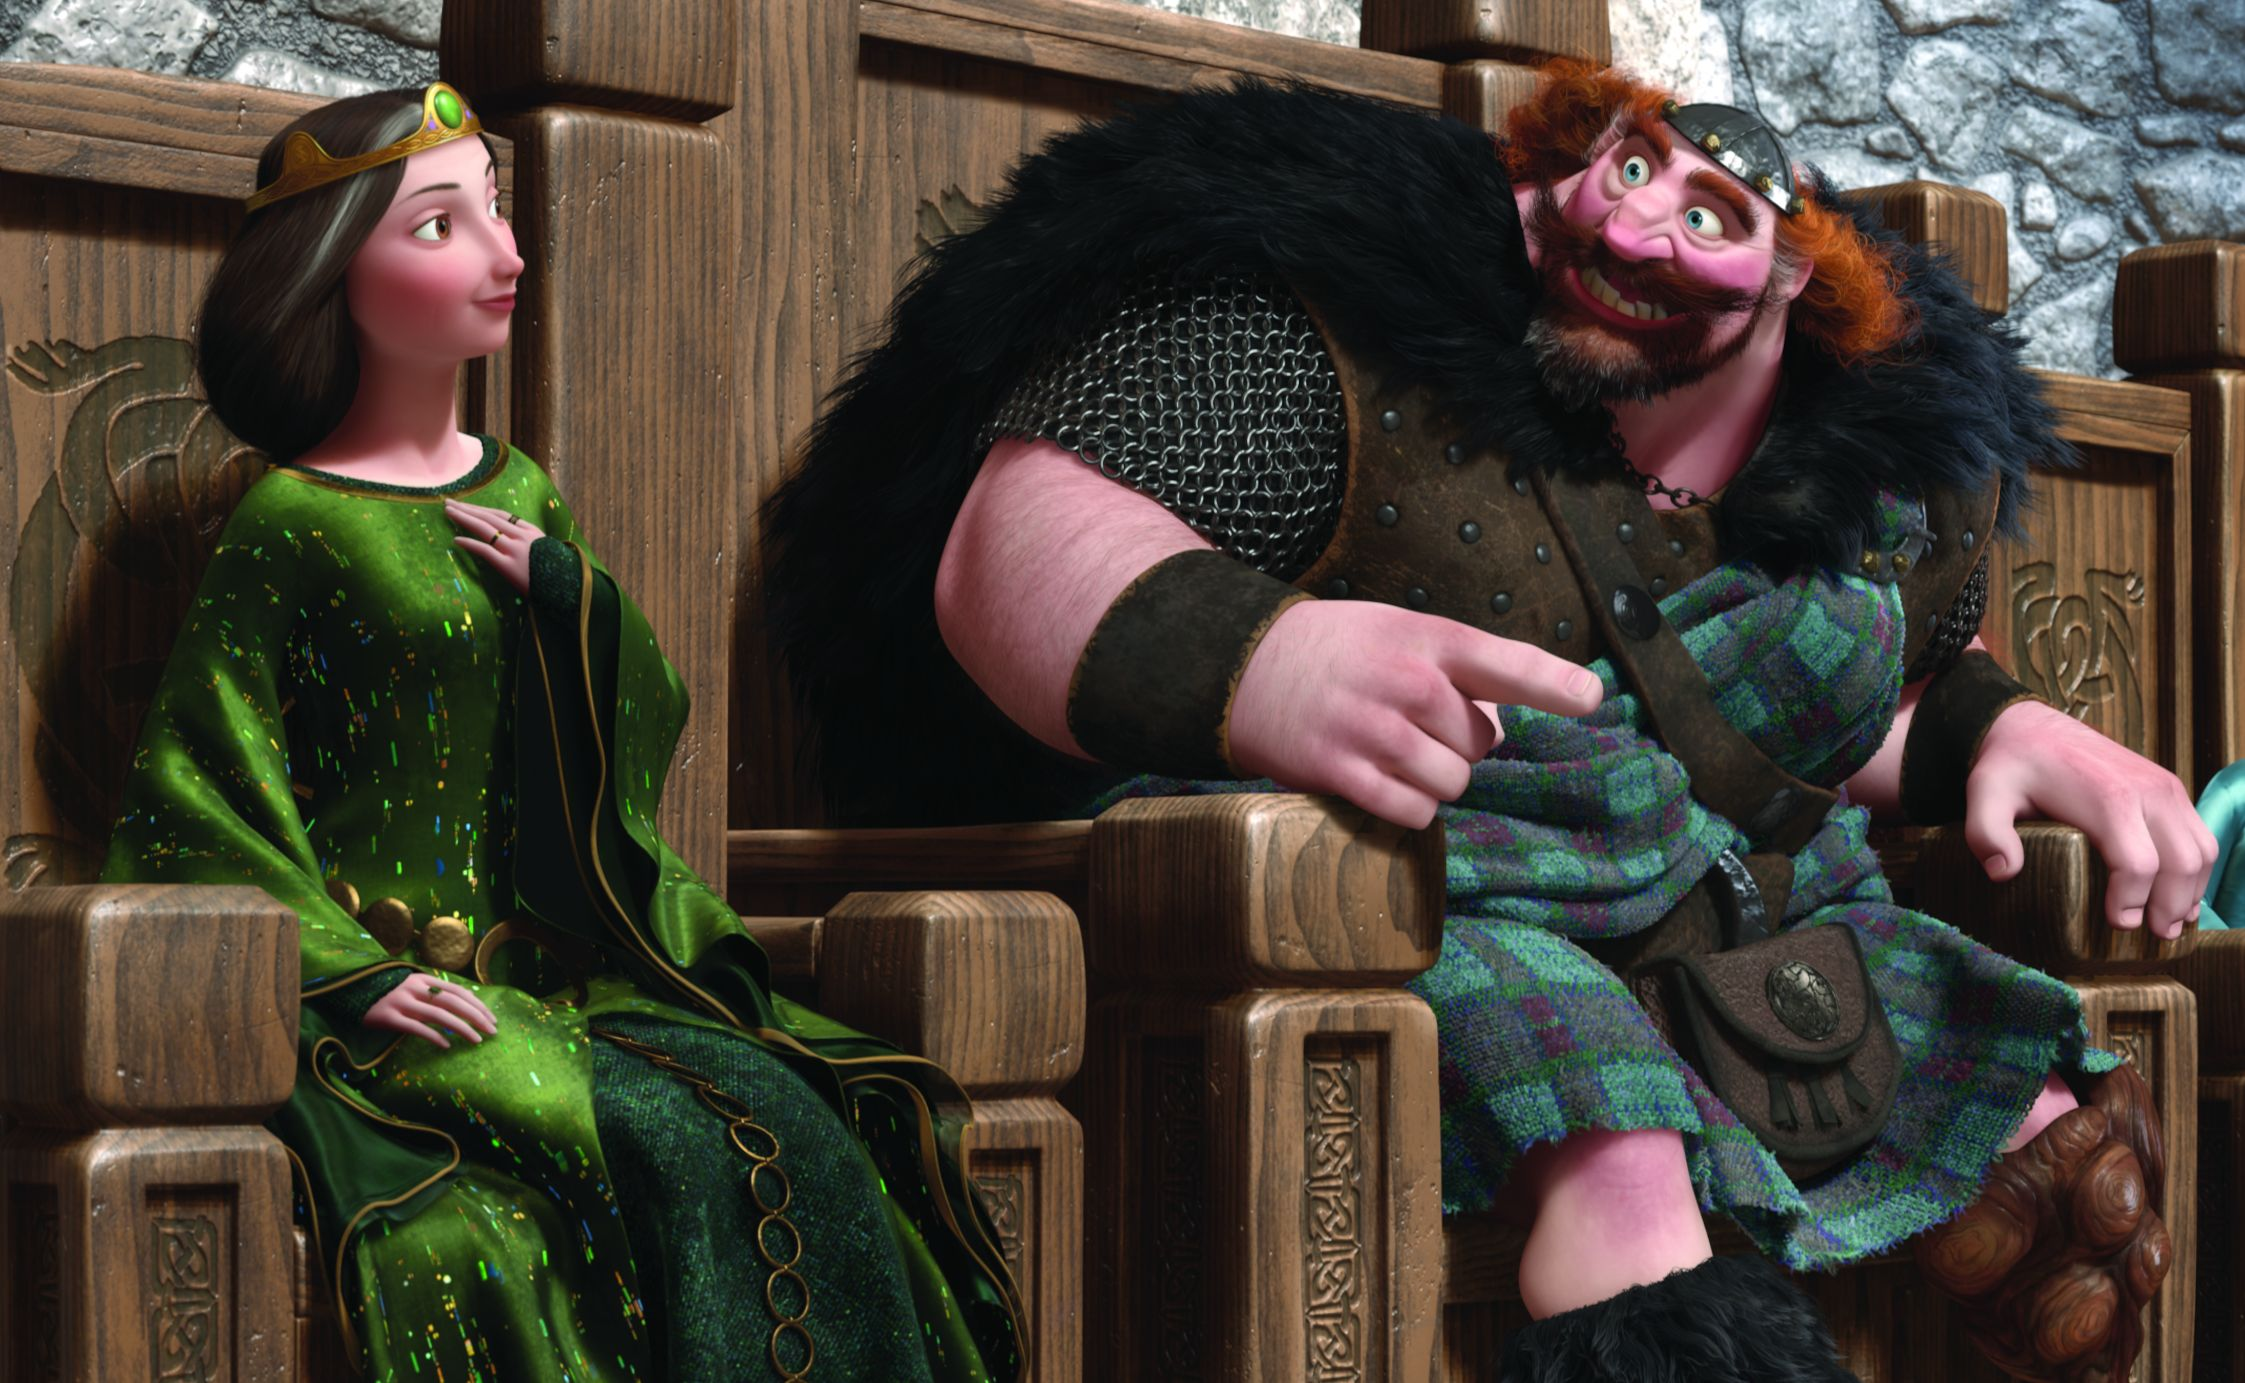 Queen Elinor and King Fergus on their thrones in Brave